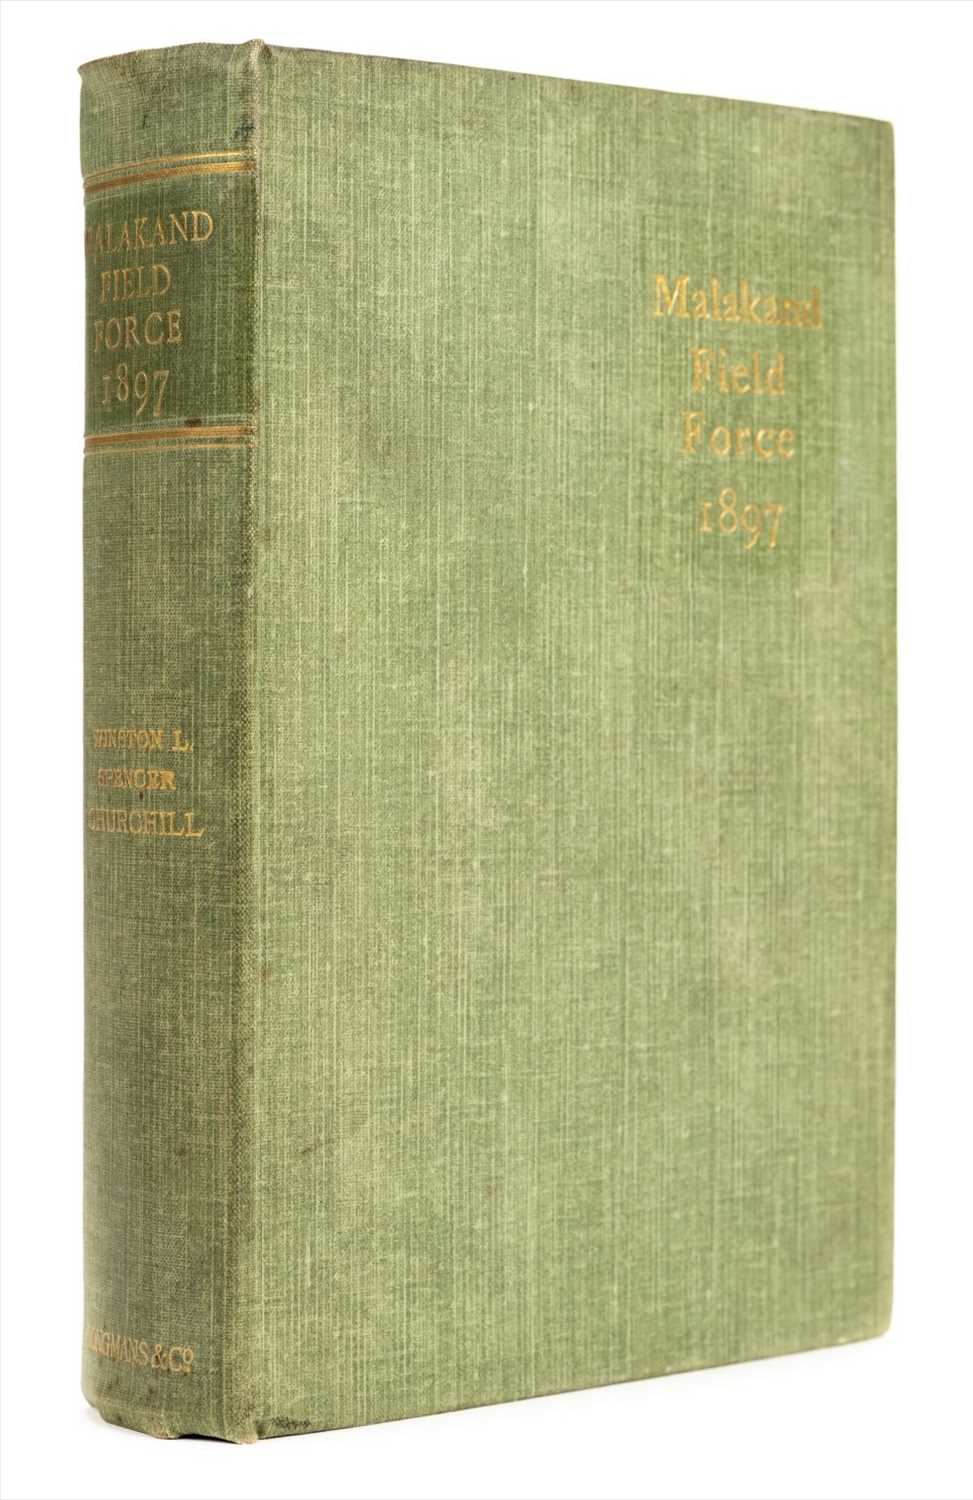 Churchill (Winston Spencer). The Story of the Malakand Field Force, 1898